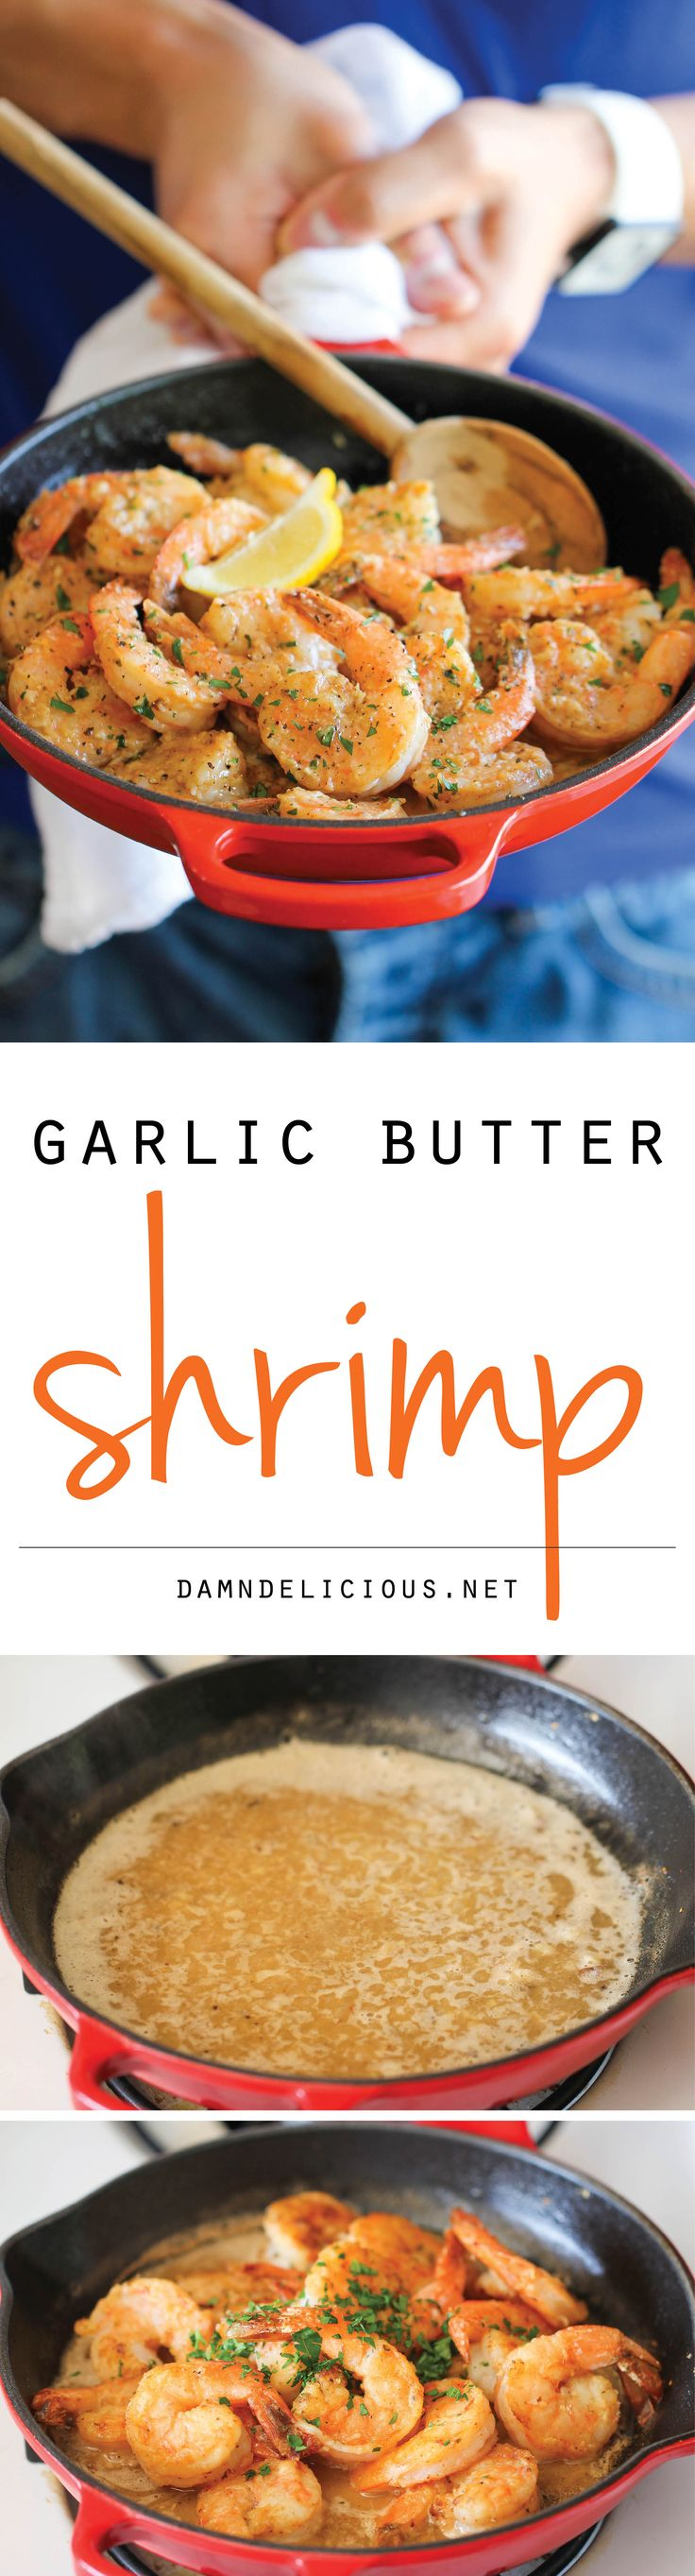 Garlic Butter Shrimp - An amazing flavor combination of garlicky, buttery goodness - so elegant and easy to make in 20 min or less! / #lowcarb shared on https://facebook.com/lowcarbzen